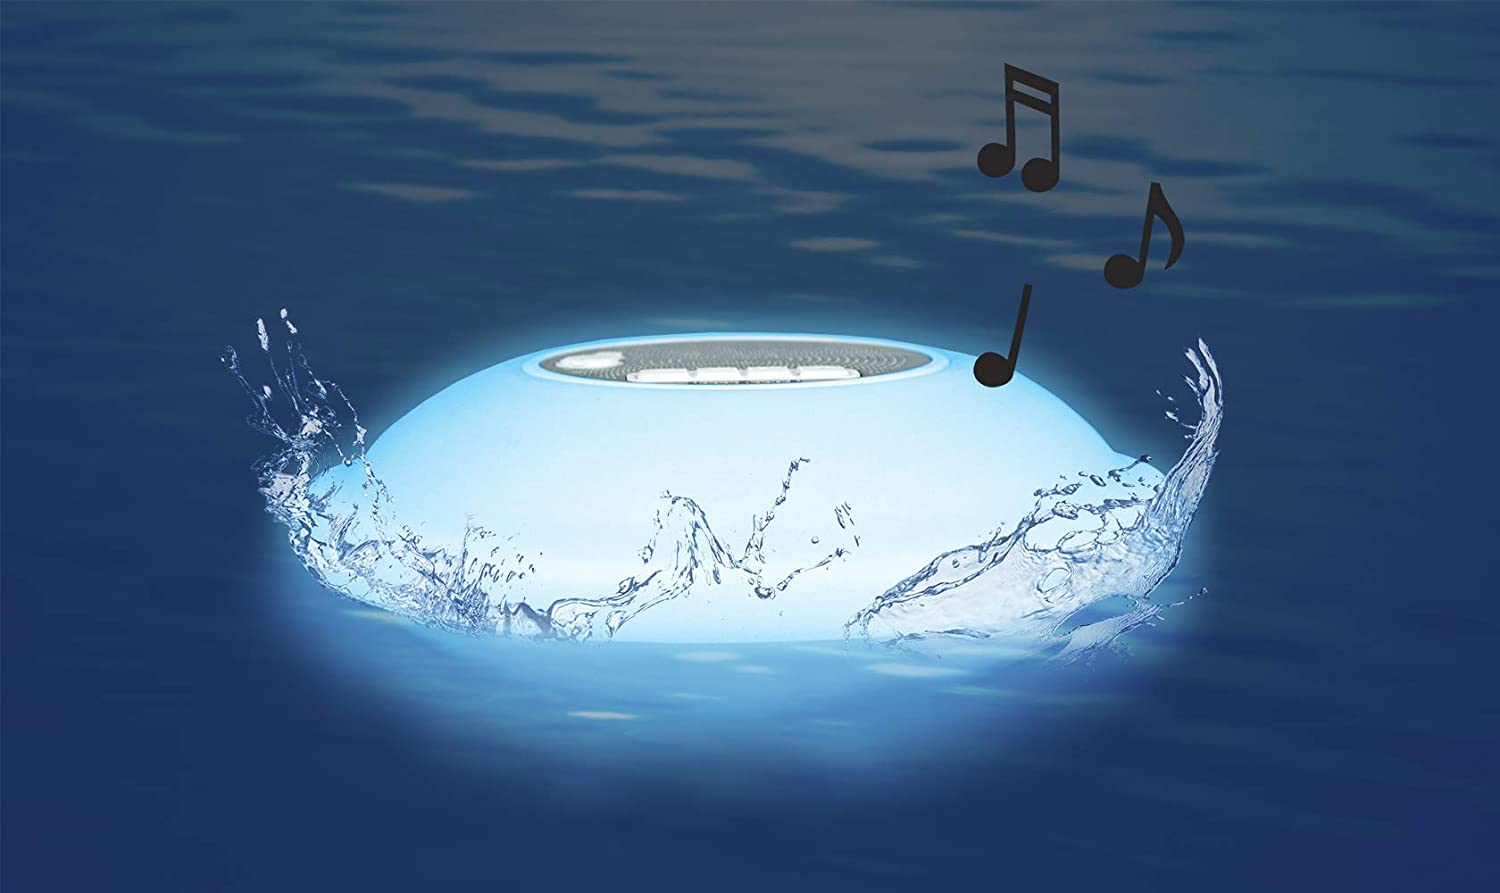 Pool master portable floating waterproof multi-light speaker